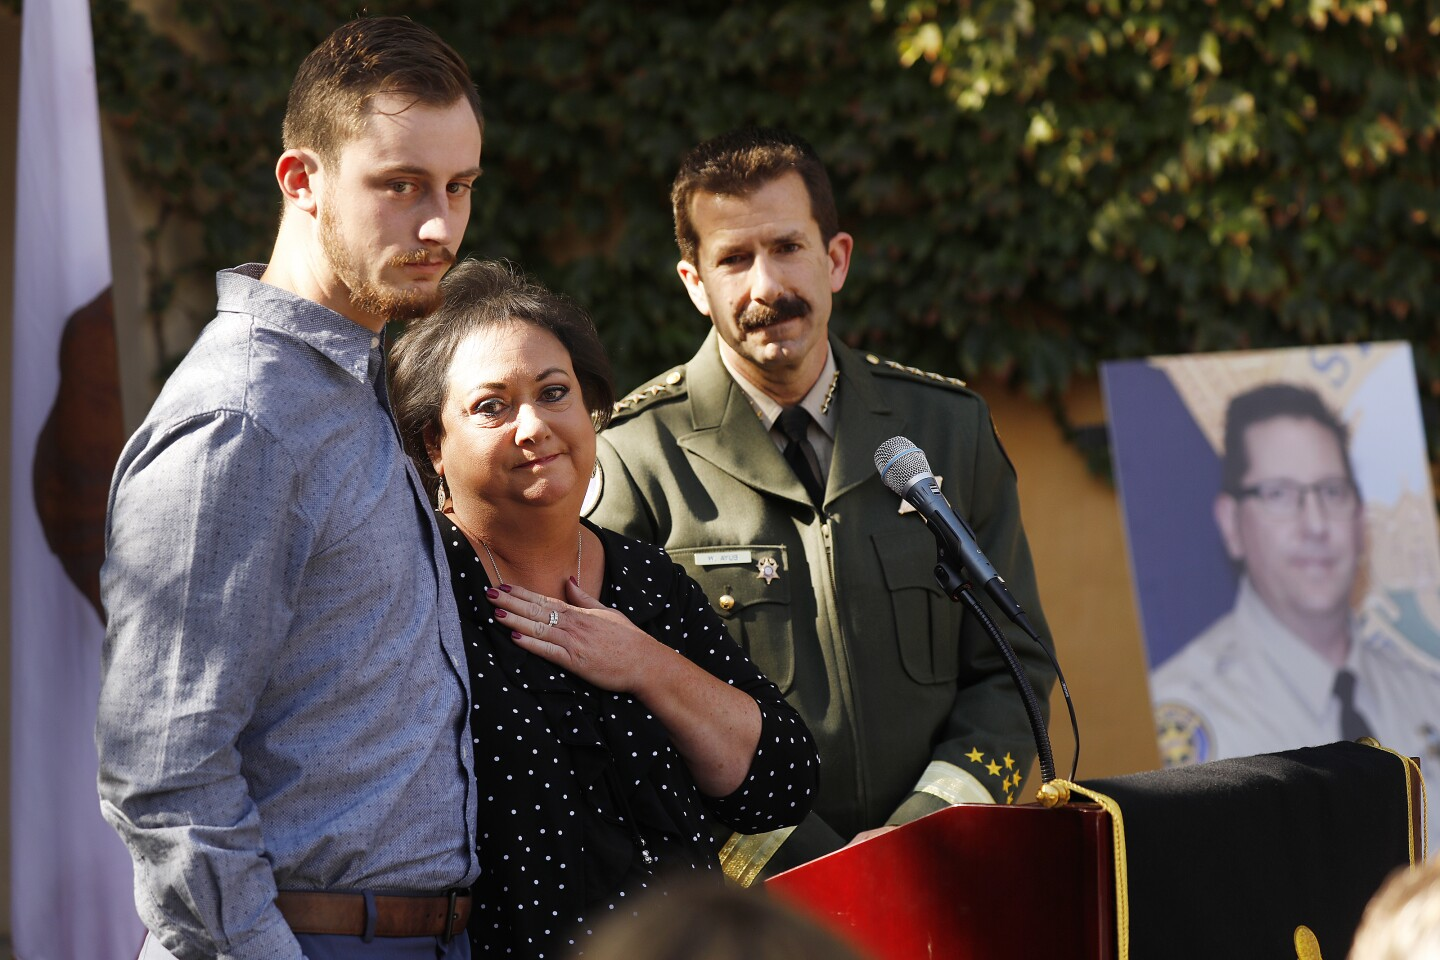 """THOUSAND OAKS, CA - NOVEMBER 6, 2019 Karen Helus, wife of Ventura County Sheriff's Sgt. Ron Helus who was killed in the line of duty during the Borderline Bar and Grill mass shooting one year ago with their son Jordan, left, and Ventura County Sheriff Bill Ayub at her side during a ceremony to dedicate a 3.4 mile section of Highway 101 between Hampshire Road and Lynn Road as the Sgt. Ron Helus Memorial Highway. """"I just wanted to say thank you to Jacqui because I know how much love went into this, I know how much hard work went into this,"""" Karen Helus said. """"And it just makes his life and his legacy keep going."""" This stretch of highway is immediately adjacent to the Borderline Bar & Grill, the location of the shooting. Assemblymember Jacqui Irwin (D – Thousand Oaks) introduced Assembly Concurrent Resolution (ACR) 17 to name the portion of U.S. Highway 101 to honor Ventura County Sergeant Ron Helus who was killed in the line of duty while responding to the active shooter threatening the lives of more than 200 college students and residents on November 7th, 2018 in Thousand Oaks. The event hosted by the Ventura County Sheriff's Office and the City of Thousand Oaks at Los Robles Greens Golf Course occurred as the signs were unveiled on the 101 freeway. """"Although this is a small gesture, I hope that by dedicating a stretch of a highway traveled by so many in the region, we can continue to be reminded of Ron's legacy of service and sacrifice to our community,"""" Assemblymember Irwin said. (Al Seib / Los Angeles Times)"""